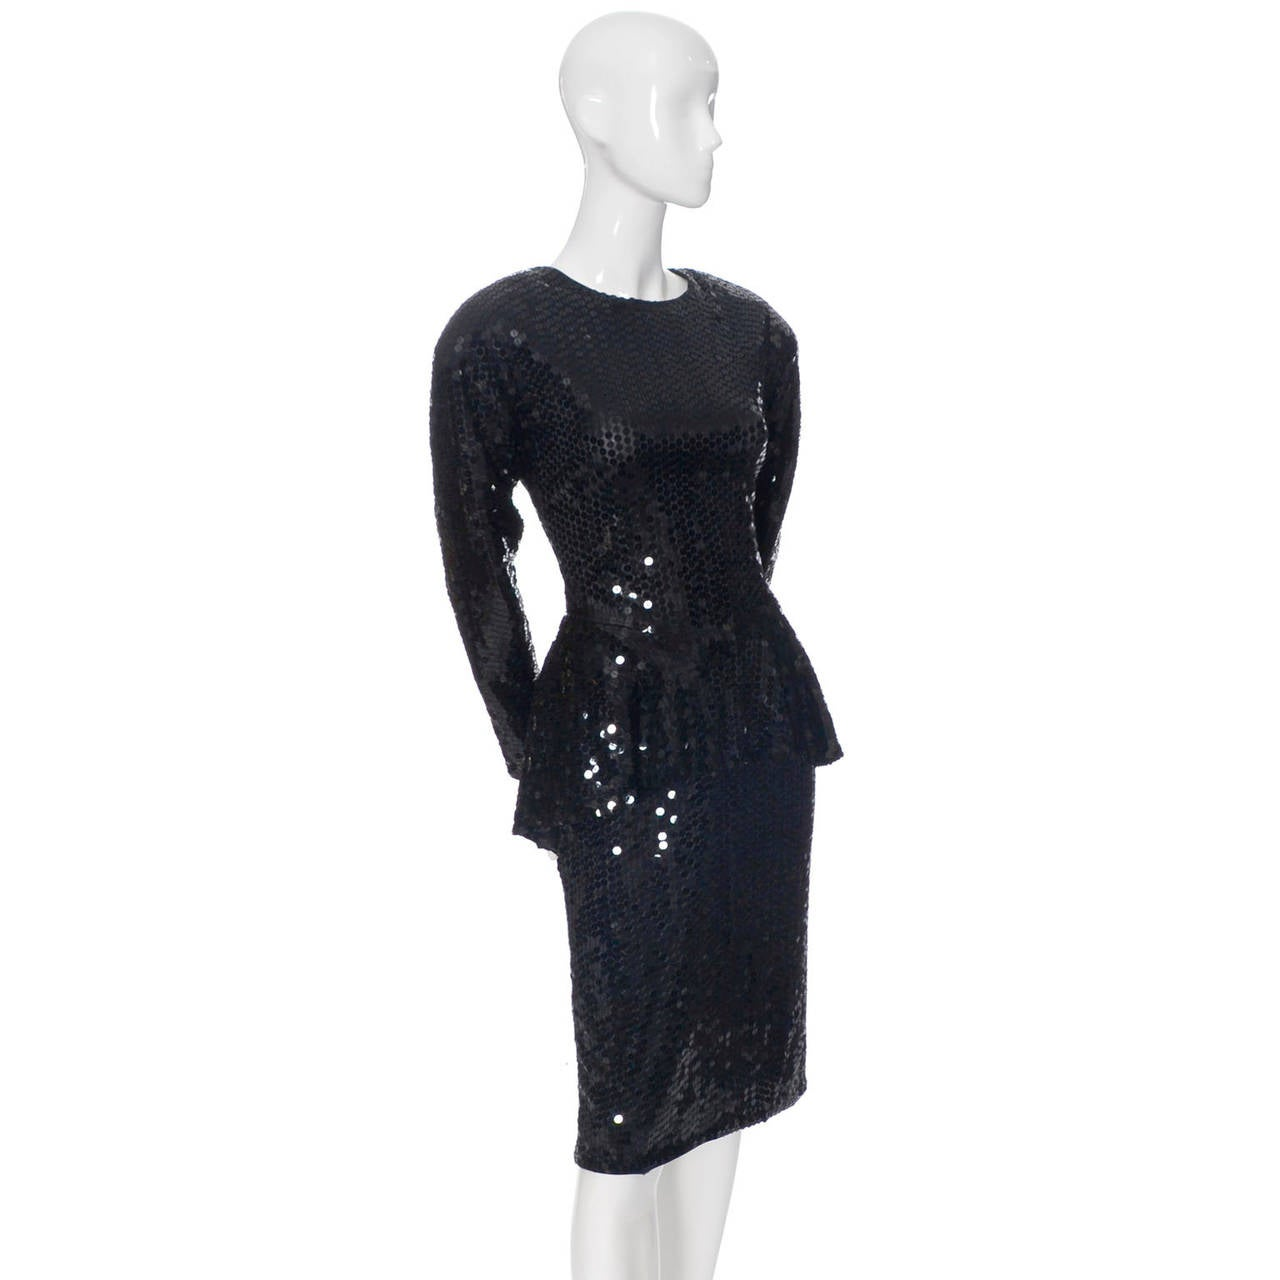 This is a fabulous classic vintage 1980's Oleg Cassini dress covered in black sequins. The dress has long sleeves, a back zipper and a beautiful peplum. The shoulder pads are attached but not sewn in so they could easily be removed if you prefer.